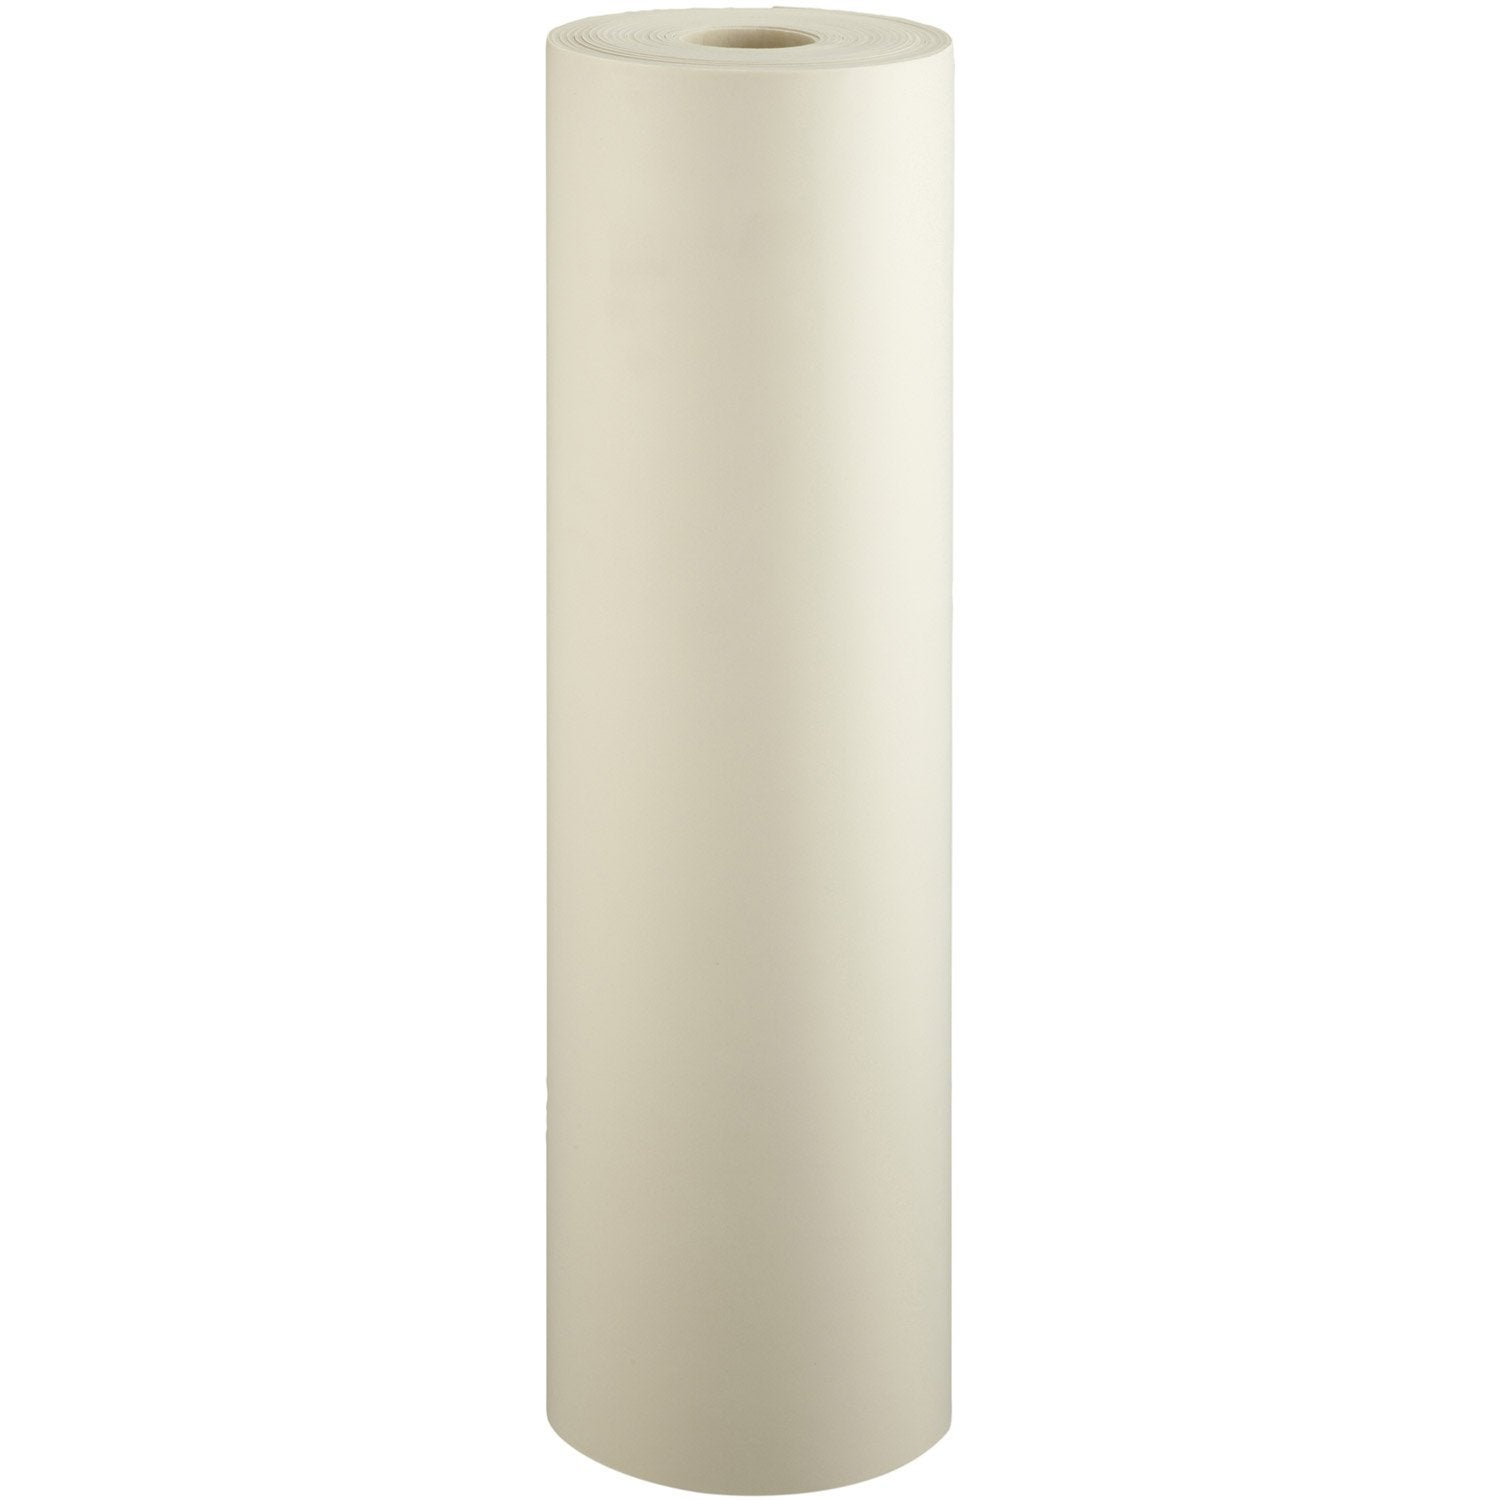 Rouleau d 39 isolation murale en latex nomacomfort leroy merlin - Isolation phonique murale ...